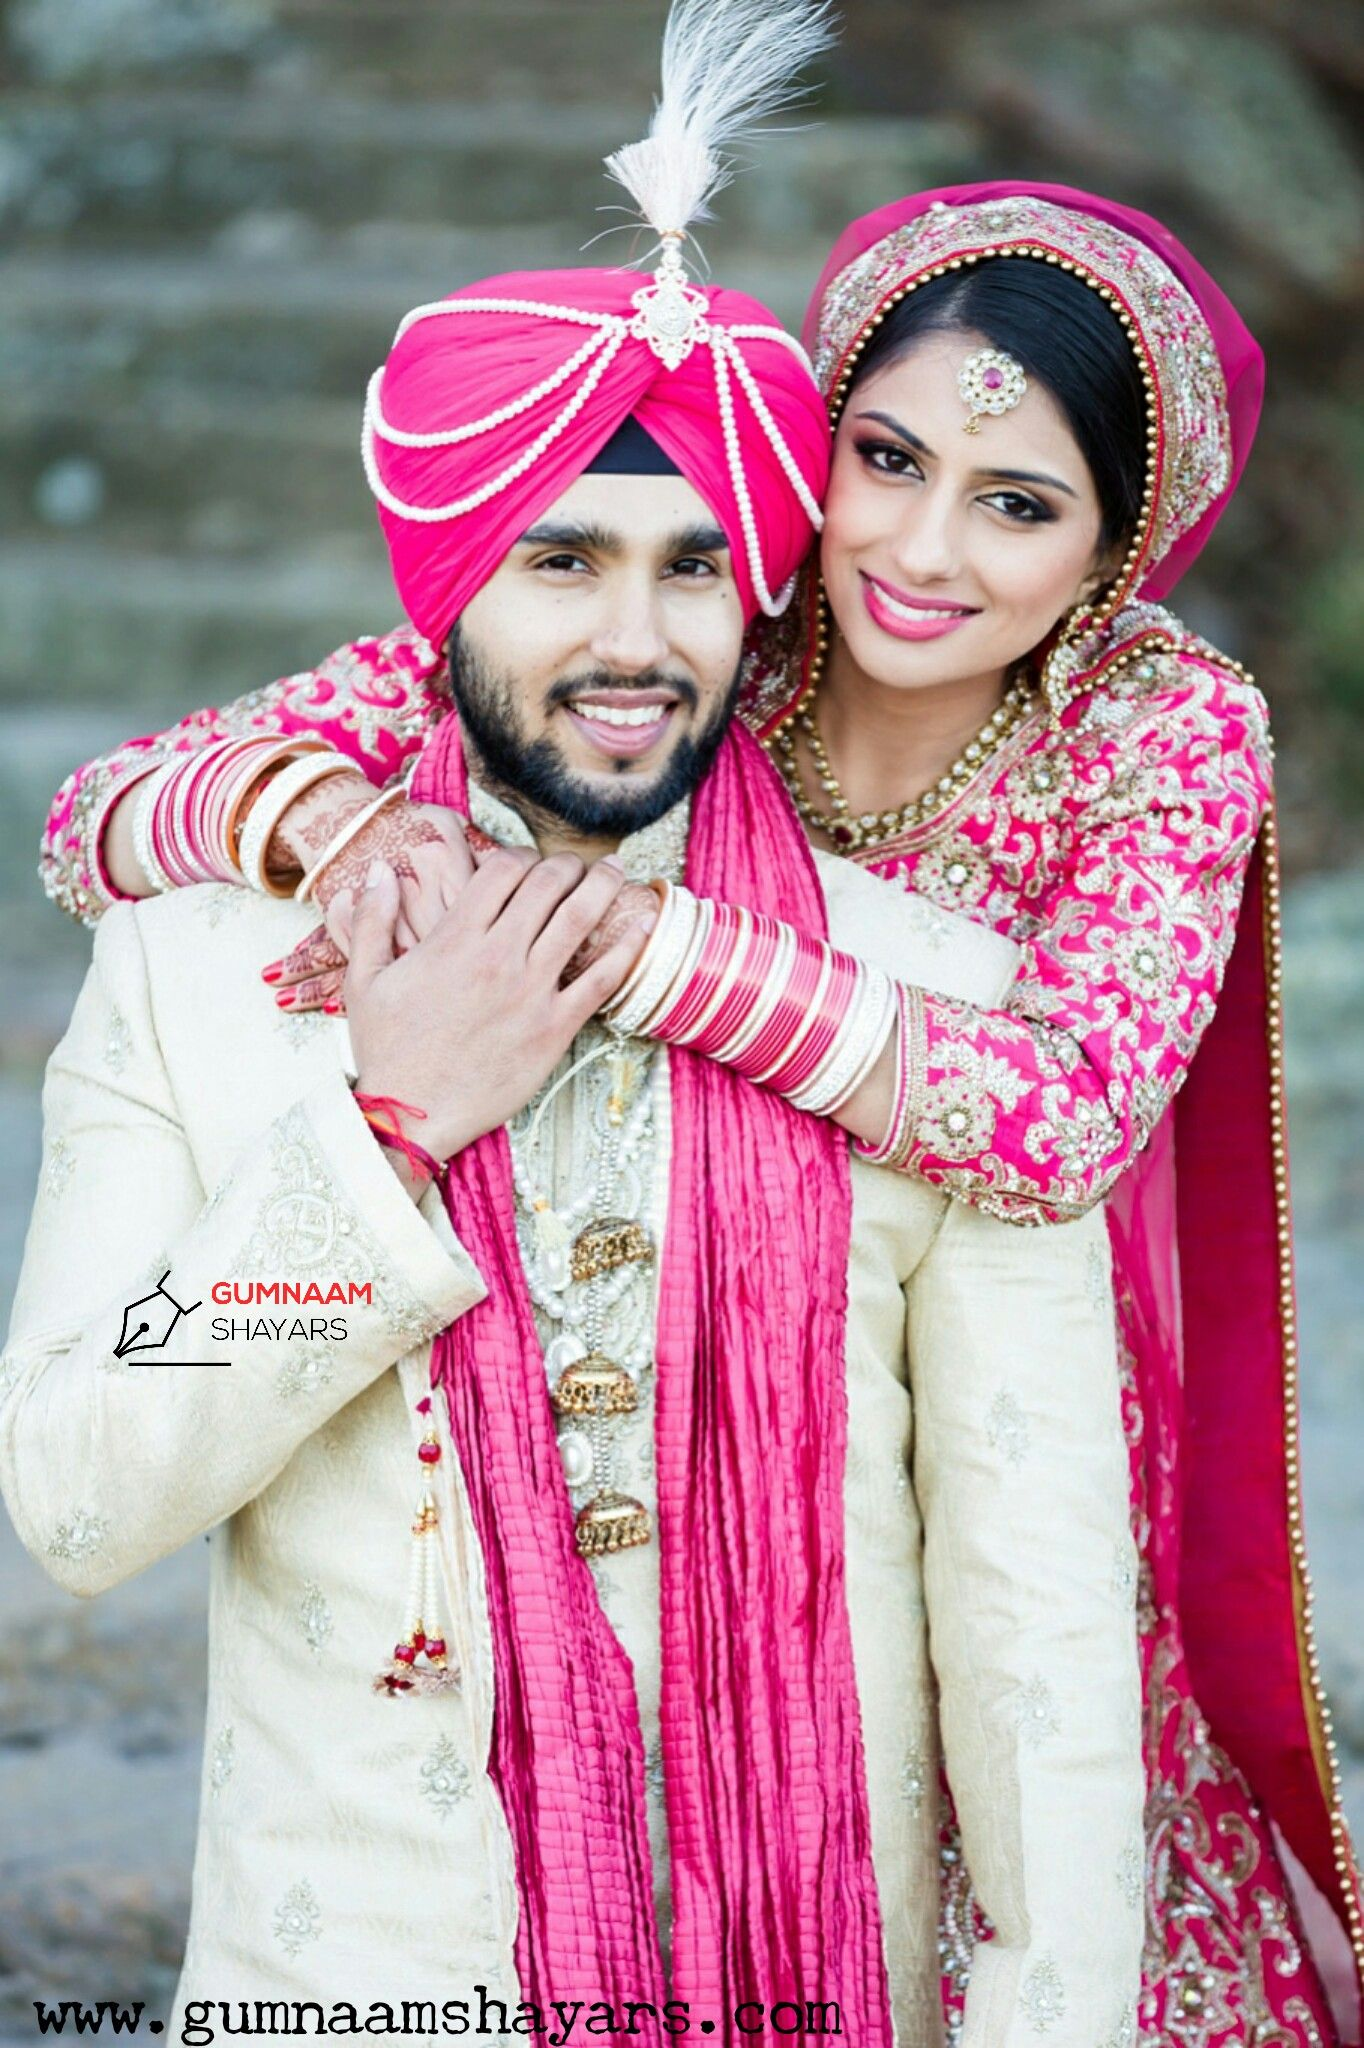 Pin de Gumnaam Shayars en Punjabi Couple | Pinterest